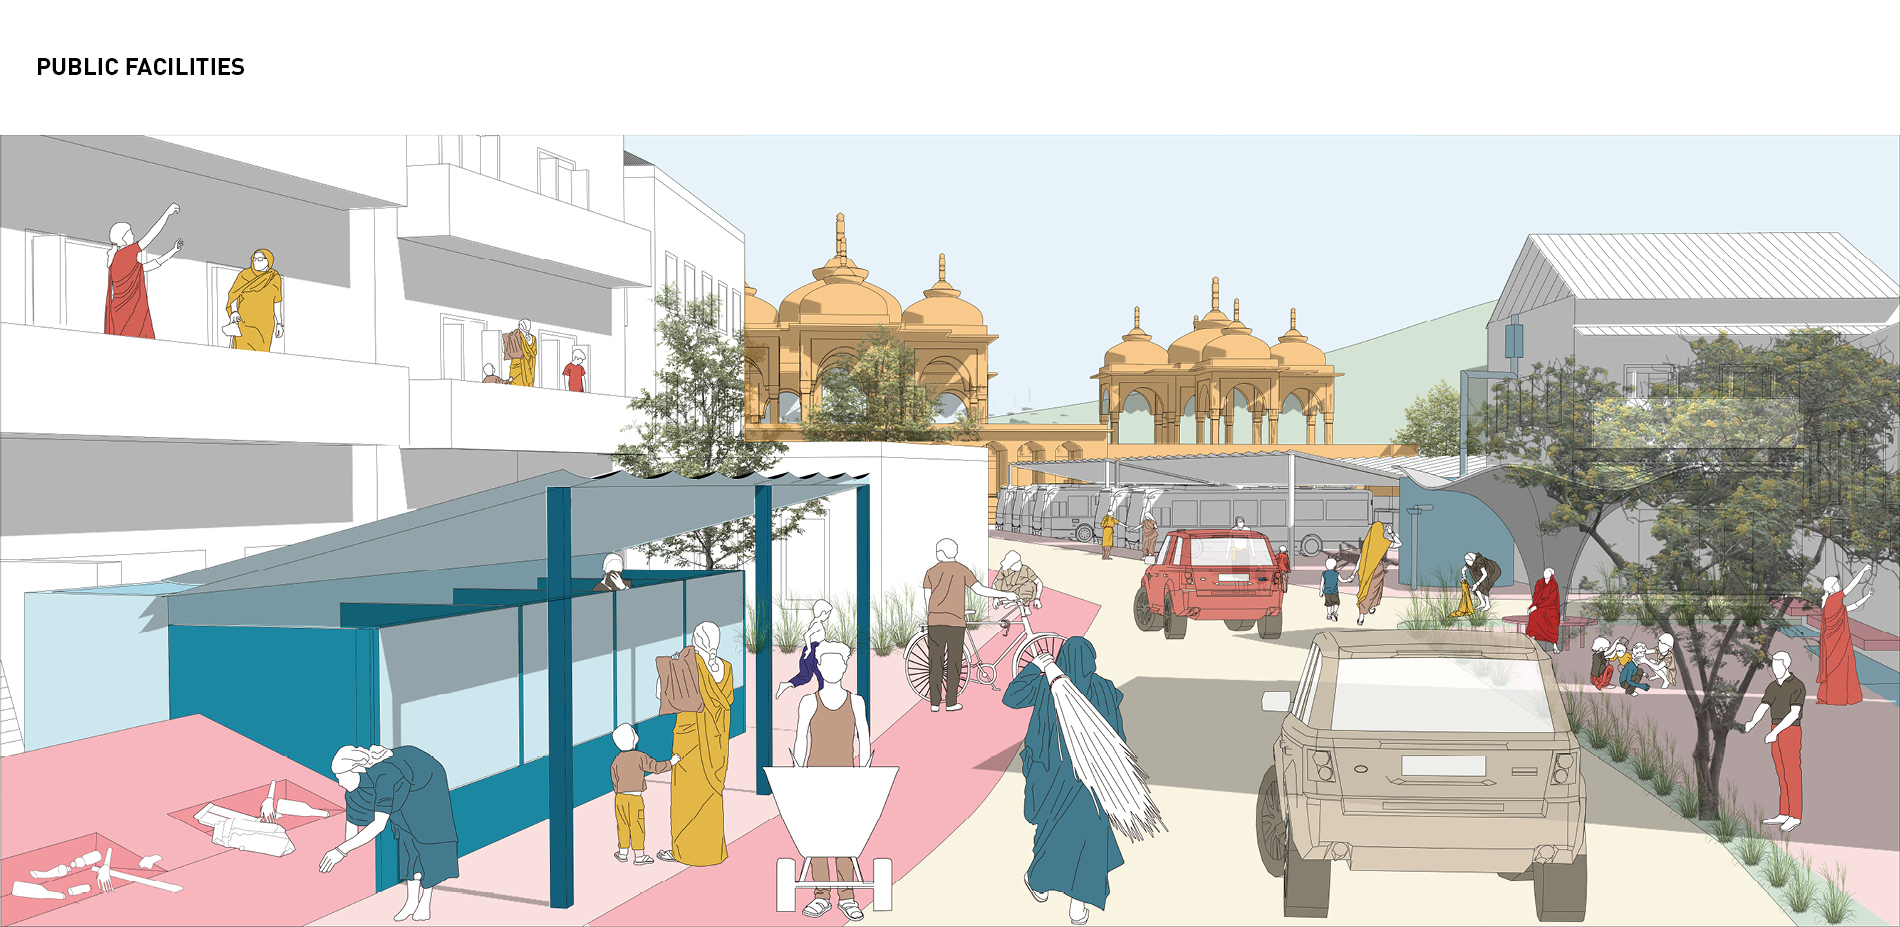 Vision for Type B: Public Facilities and Community Space